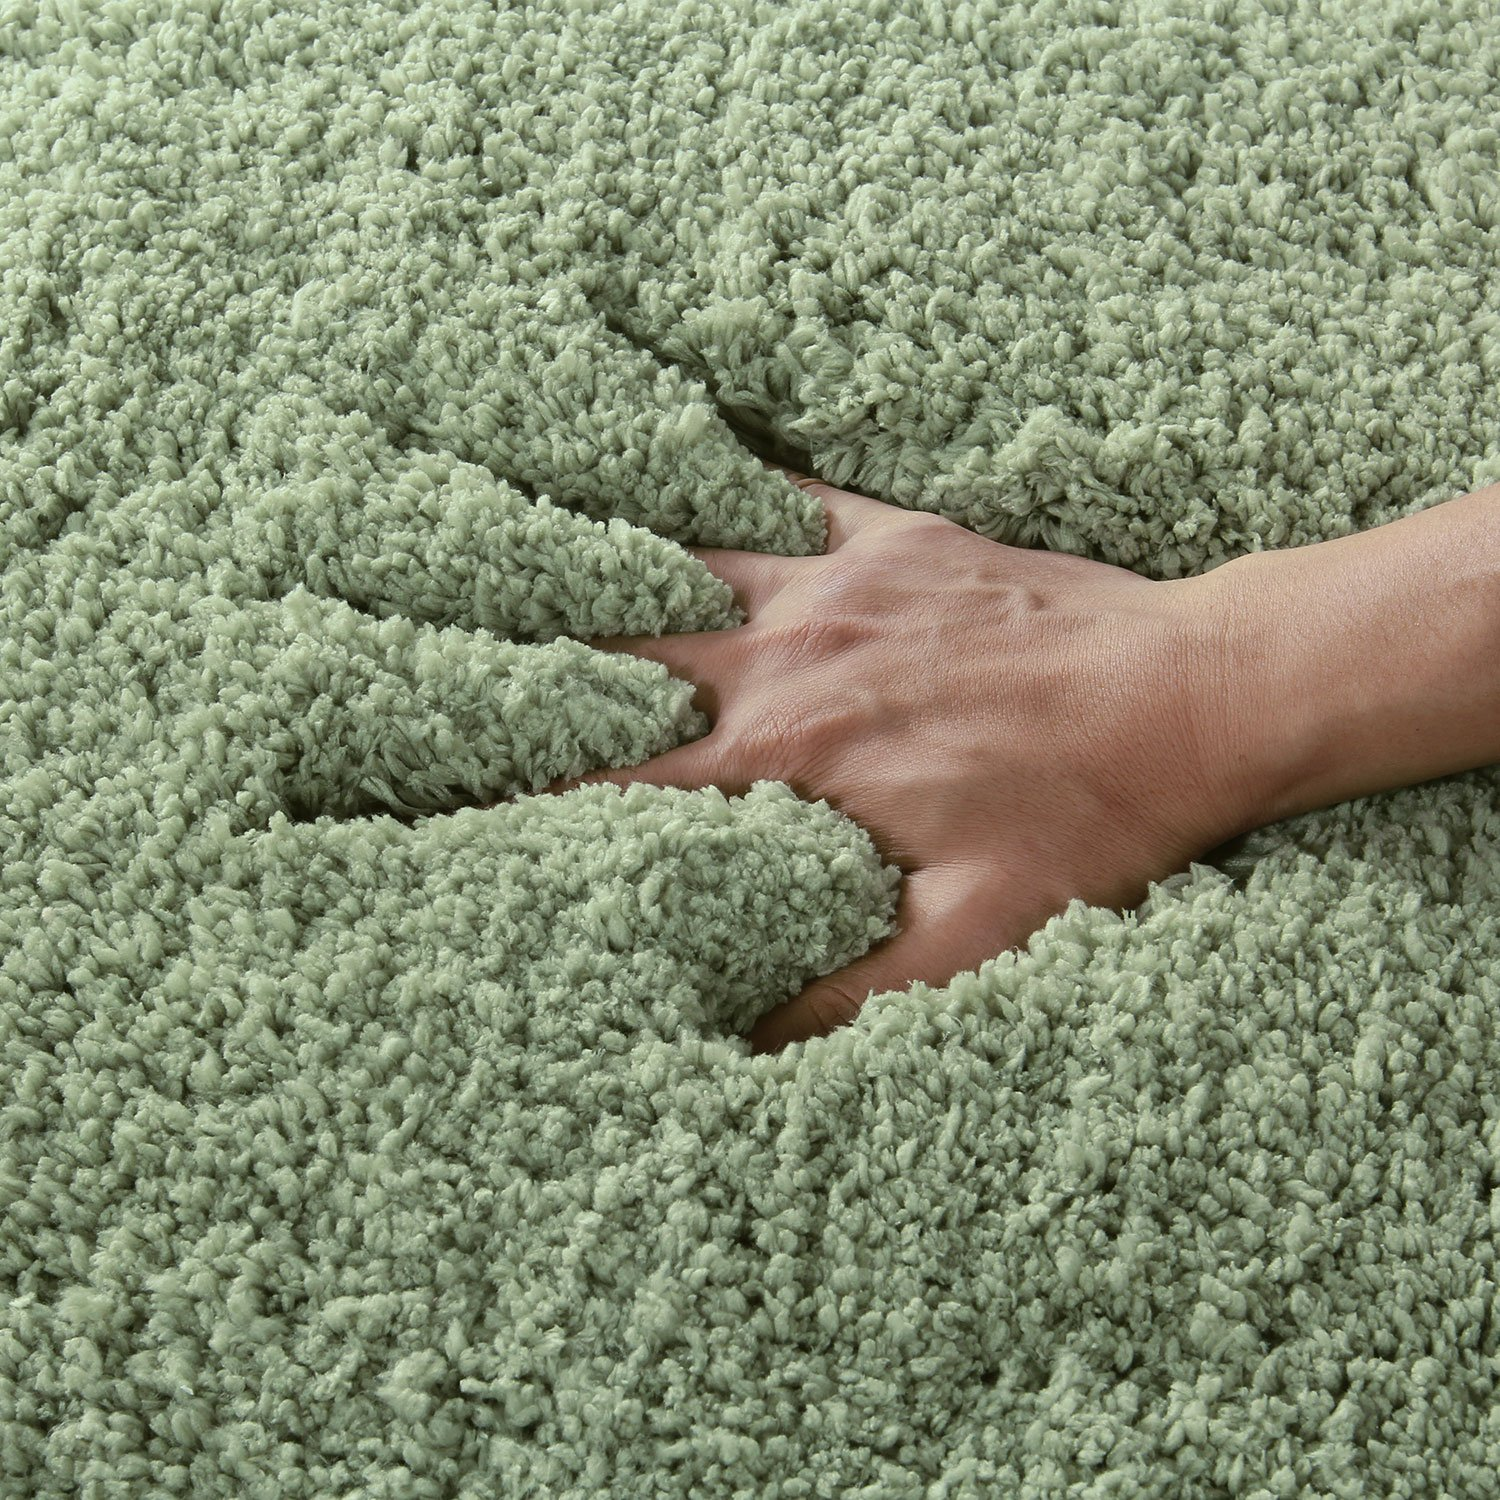 Norcho Soft Microfiber Water Absorbent Non Slip Antibacterial Rubber Luxury Bath Mat Rug 17x27 Grass Green Amazoncouk Kitchen Home